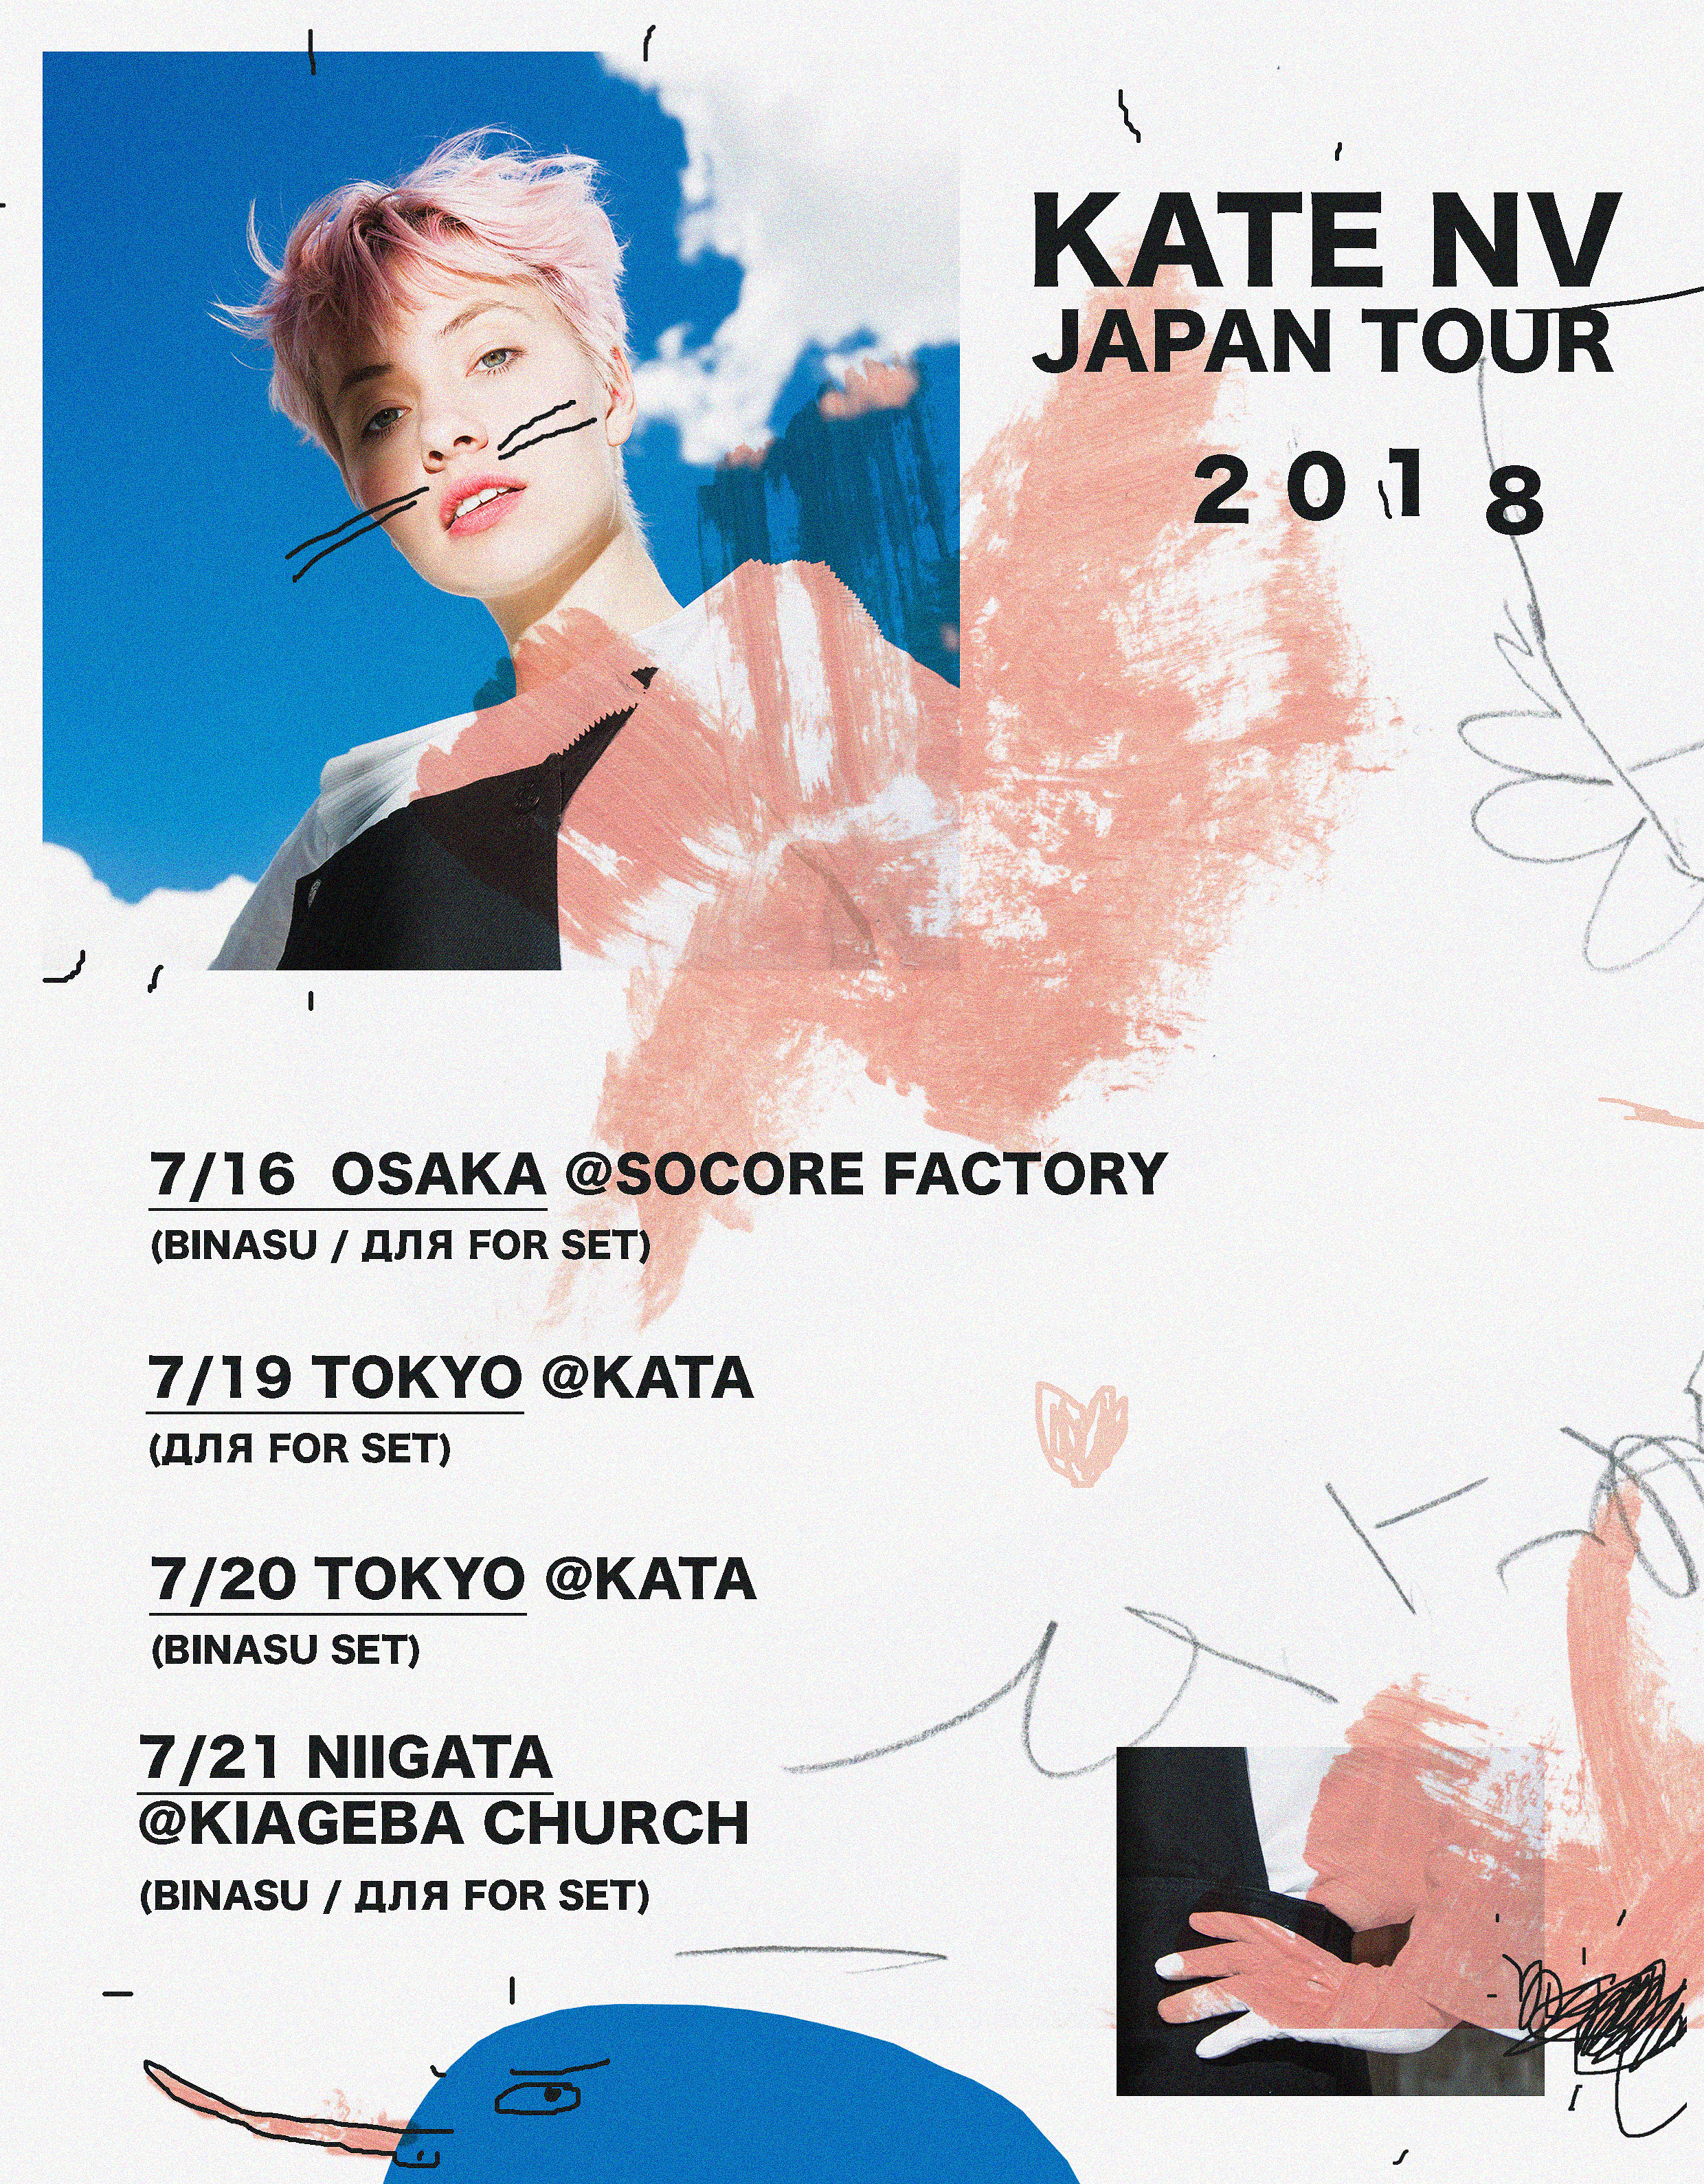 KATE NV JAPAN TOUR 2018